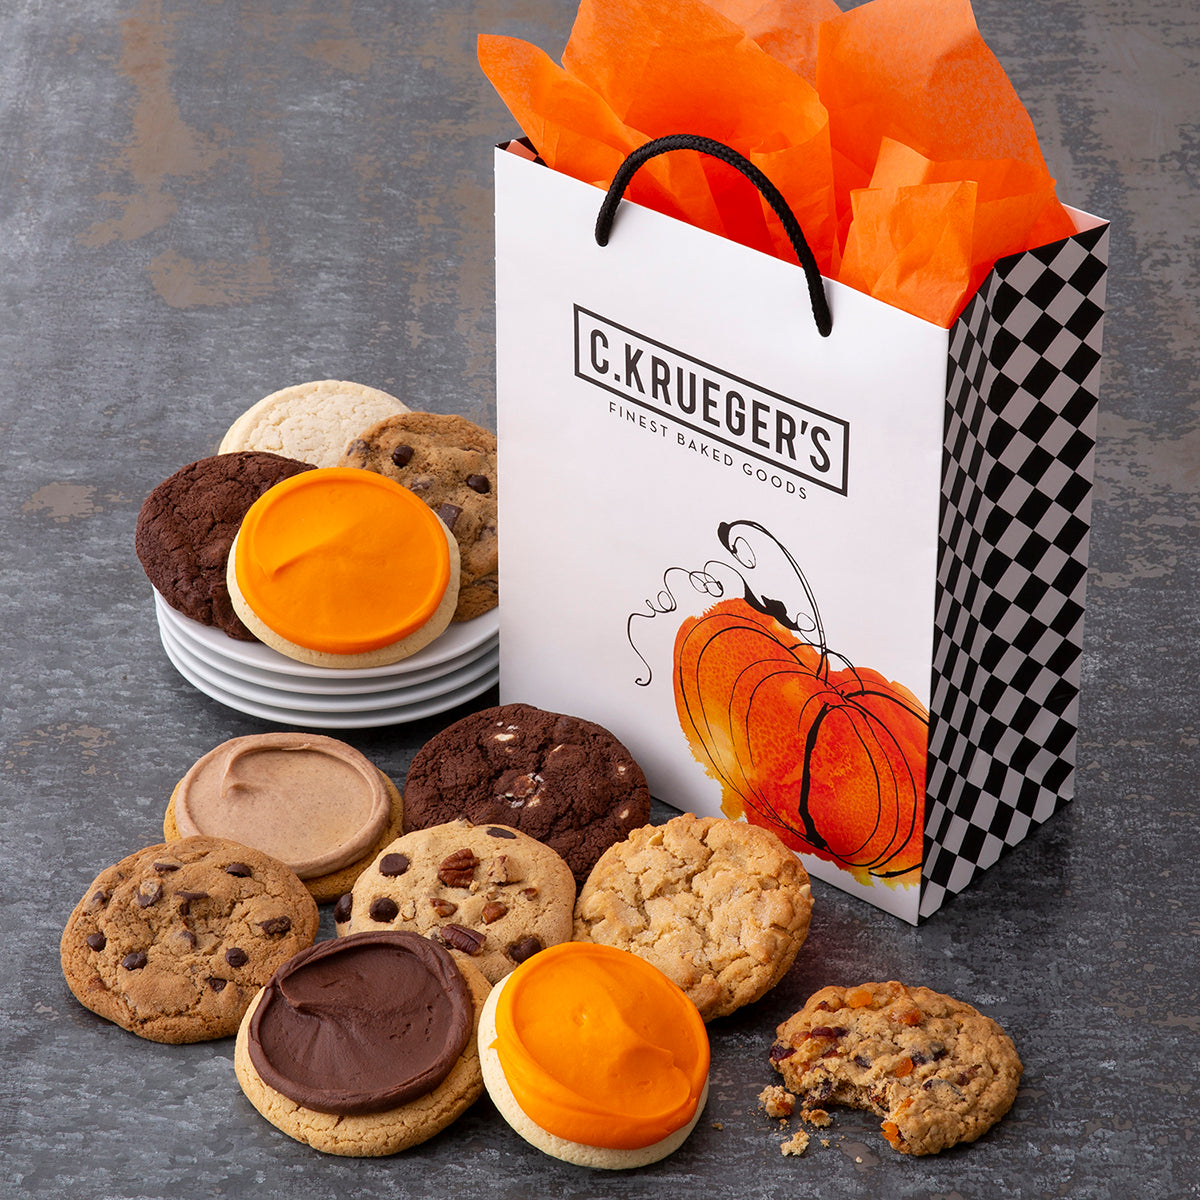 Pumpkin Gift Bag - Every Flavor Cookie We Bake